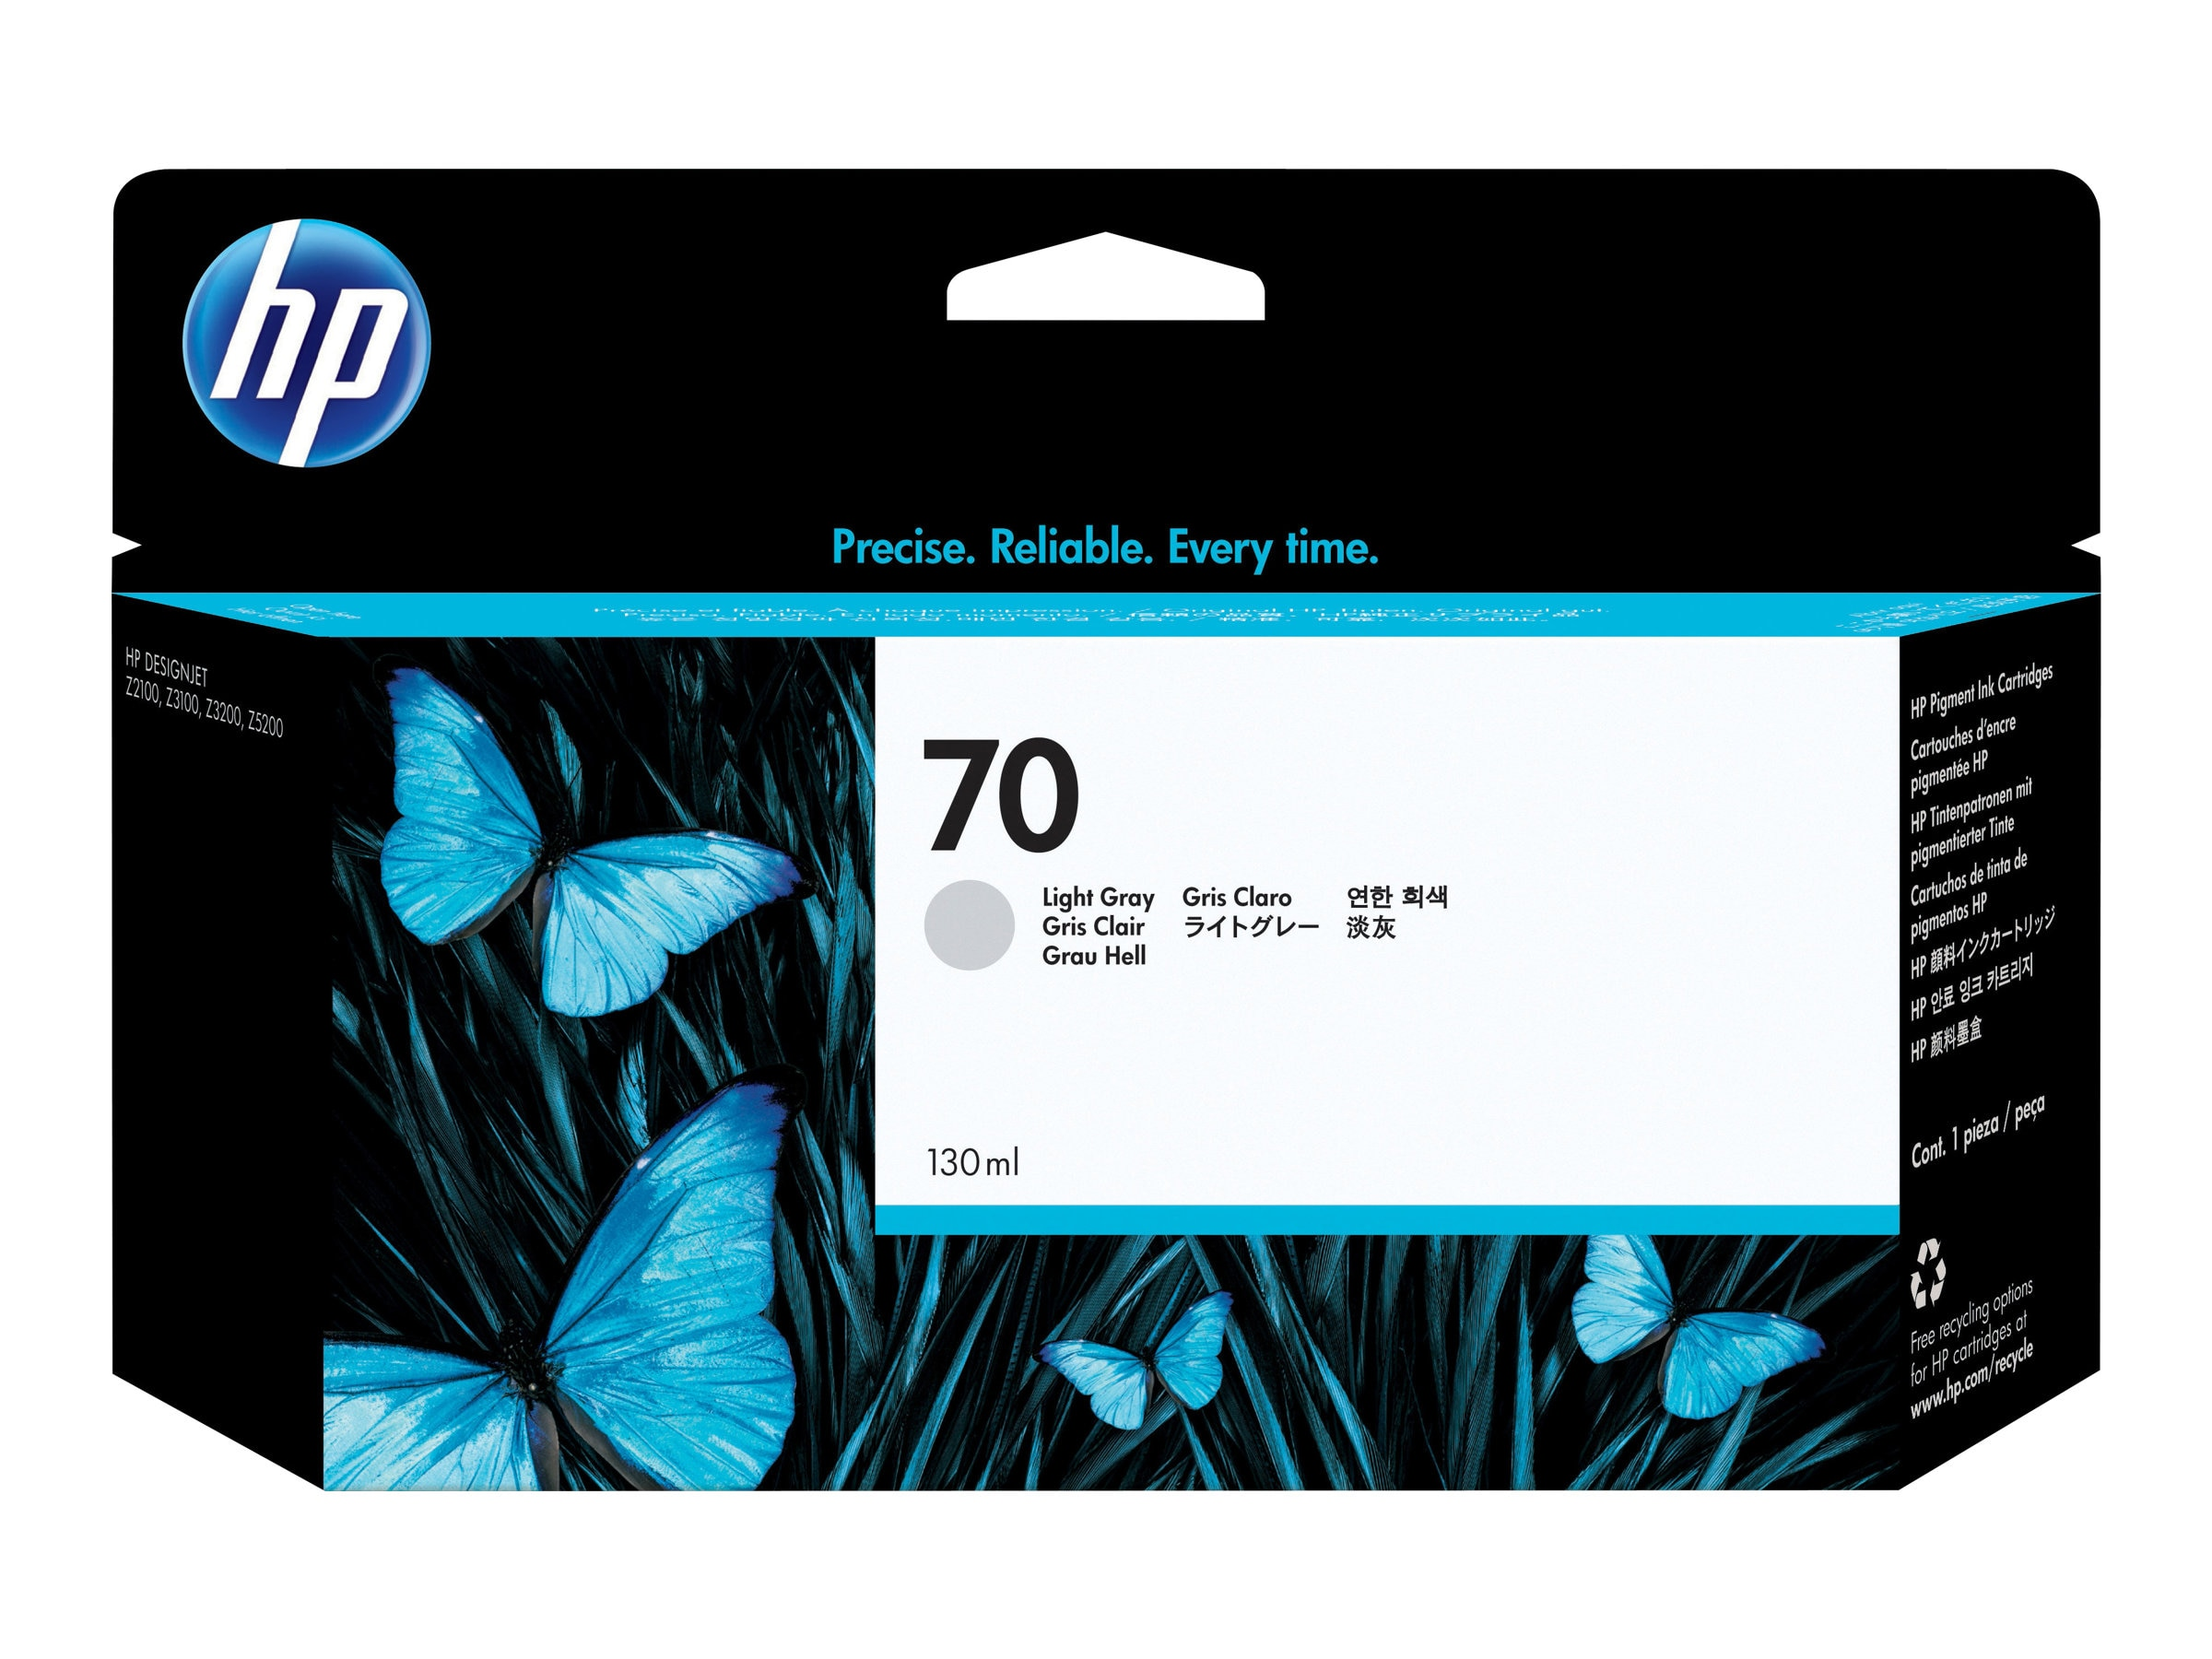 HP 70 Light Gray Ink Cartridge for HP DesignJet Printers, C9451A